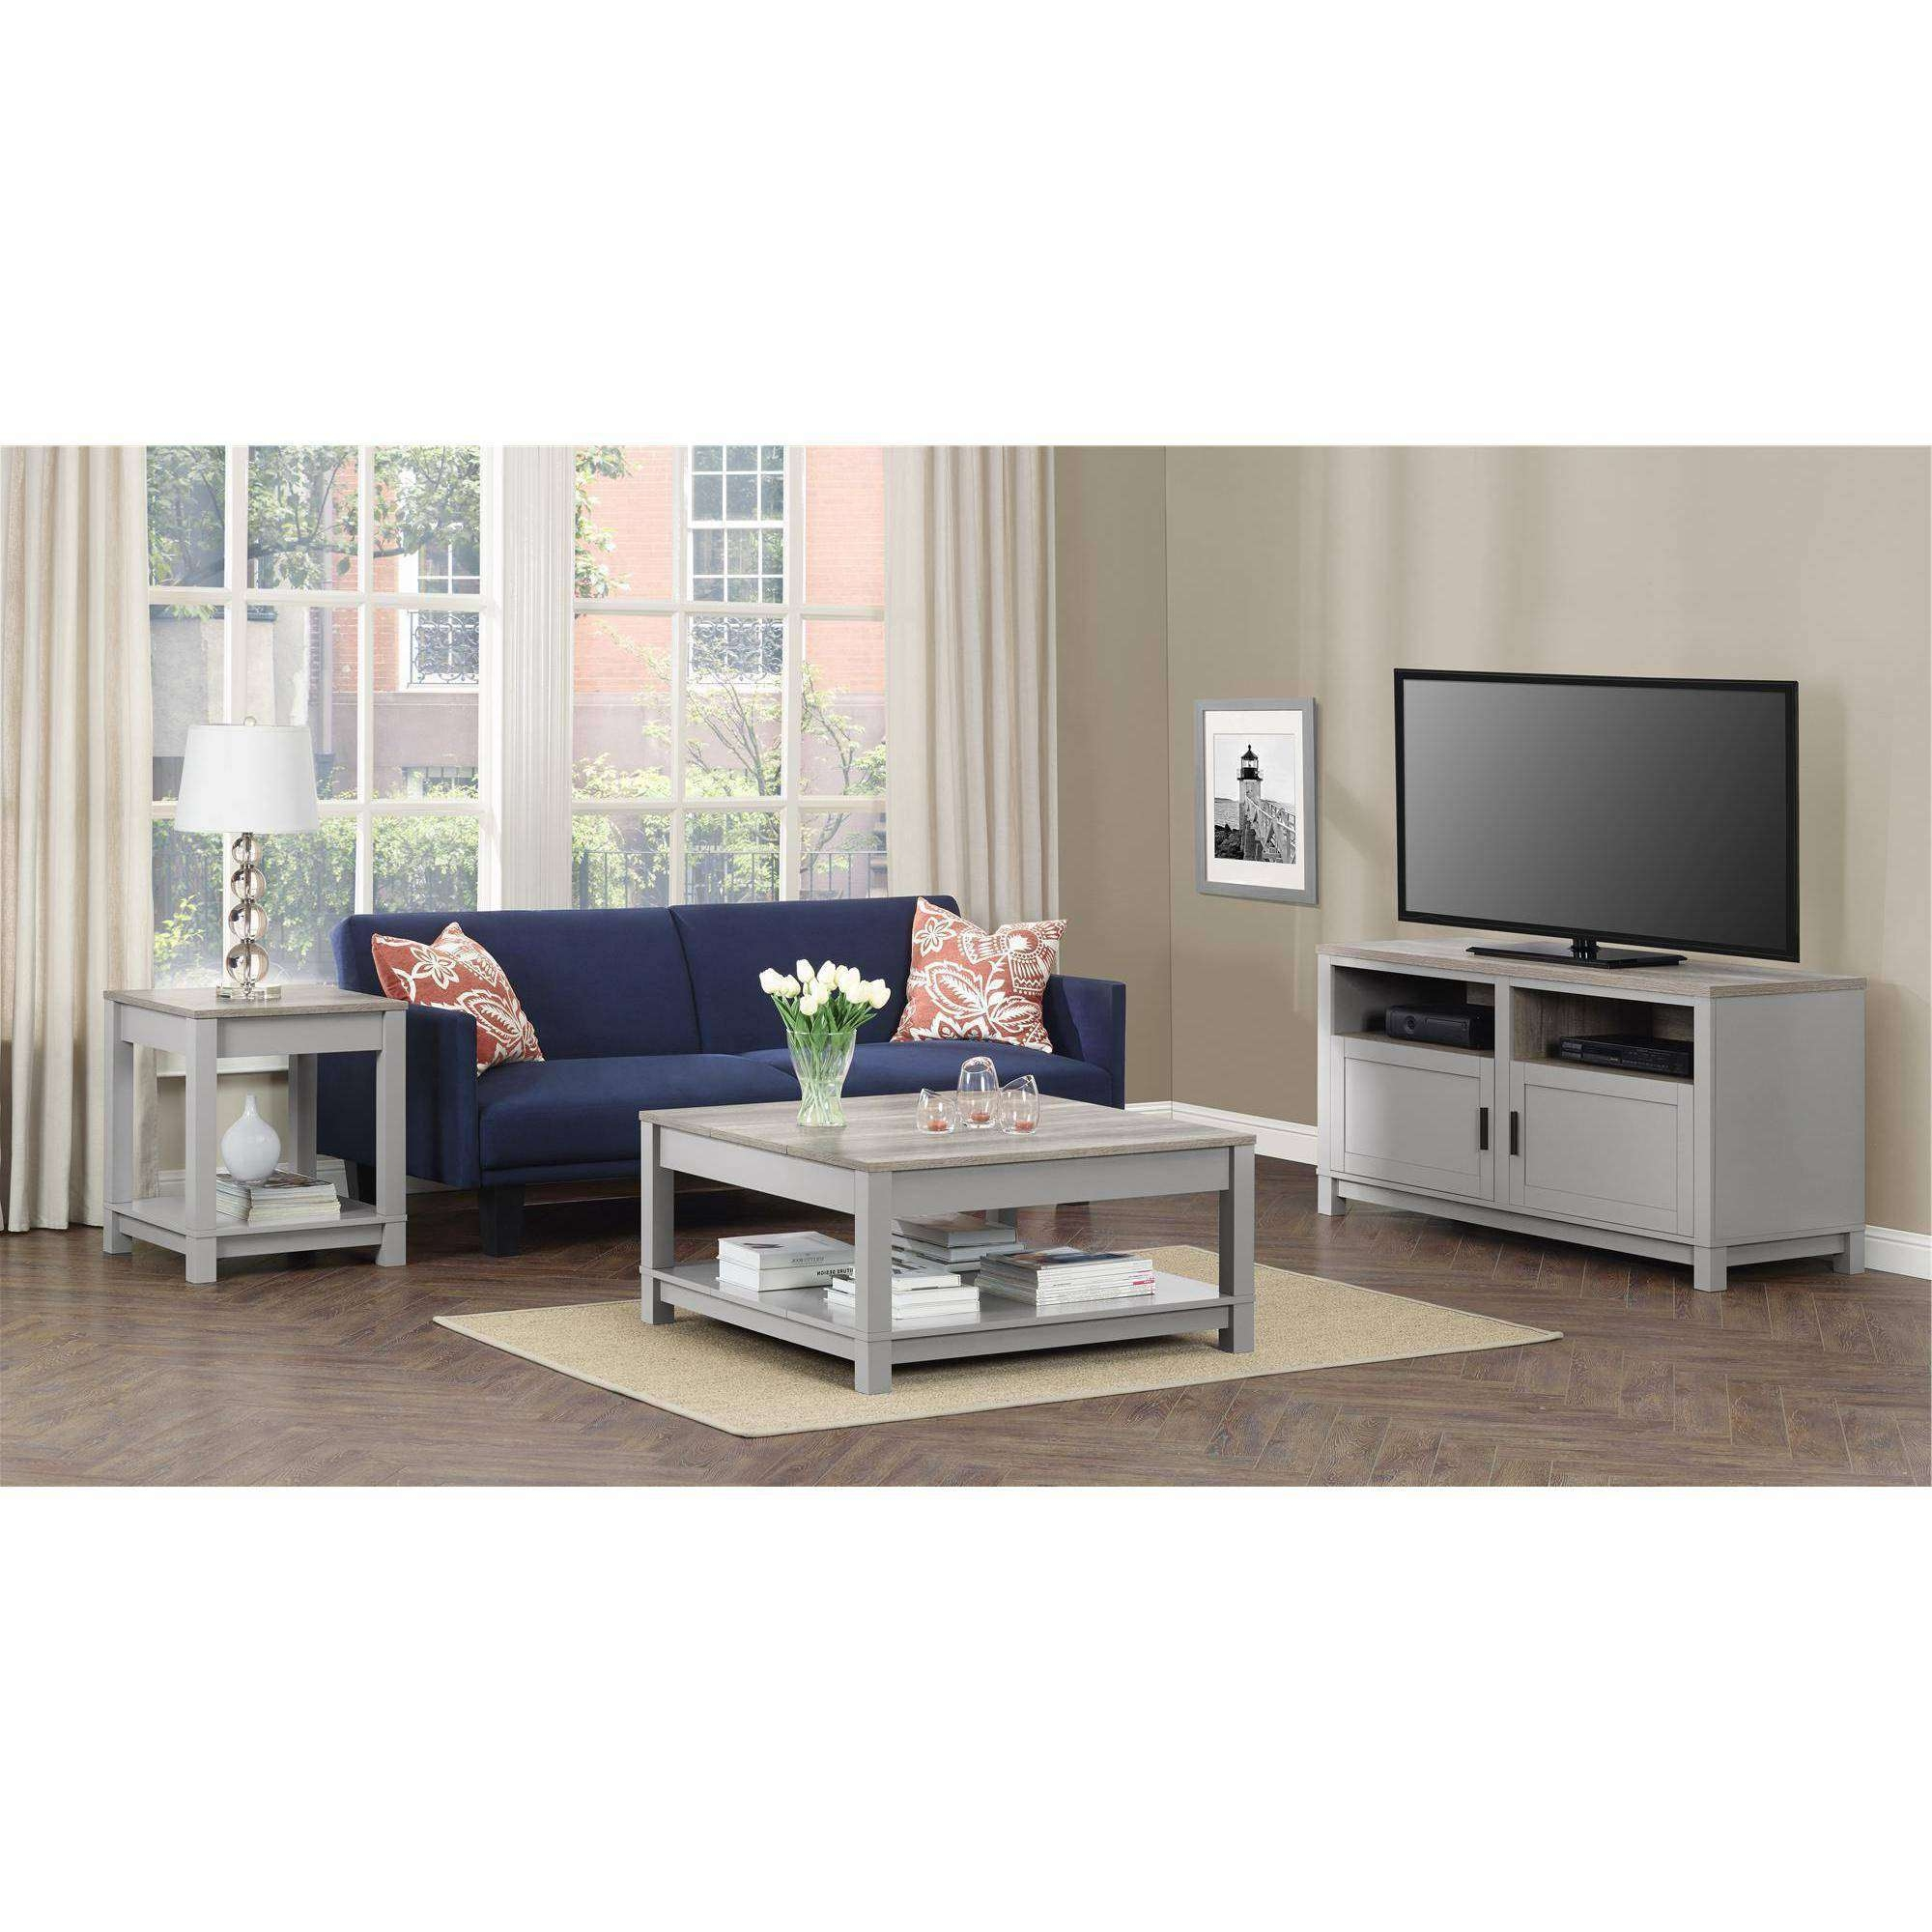 Coffee Tables : Living Room Coffee Table Sets Small Occasional Inside Tv Cabinets And Coffee Table Sets (View 11 of 20)